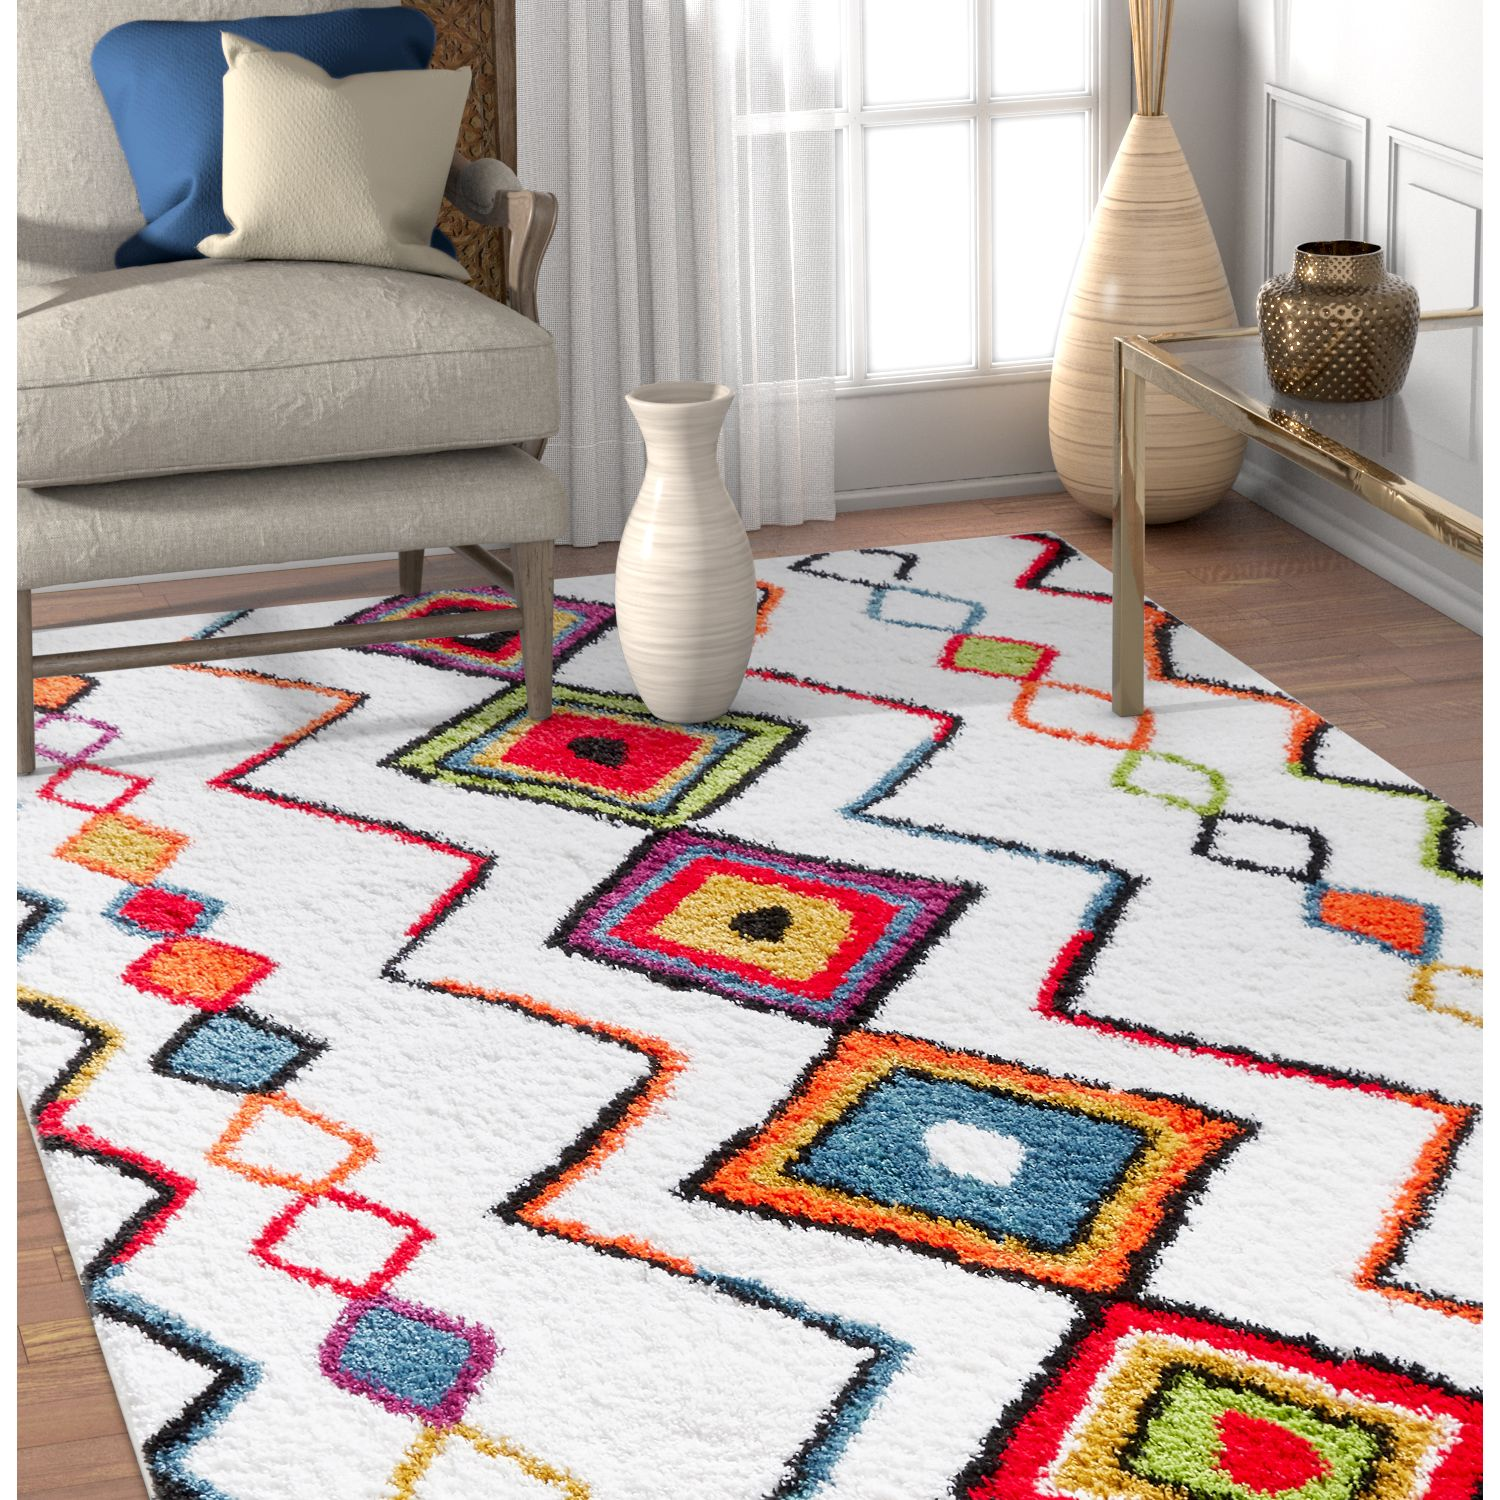 Well Woven Tribal Rhapsody Casablanca Moroccan Aztec Shag White Area Rug